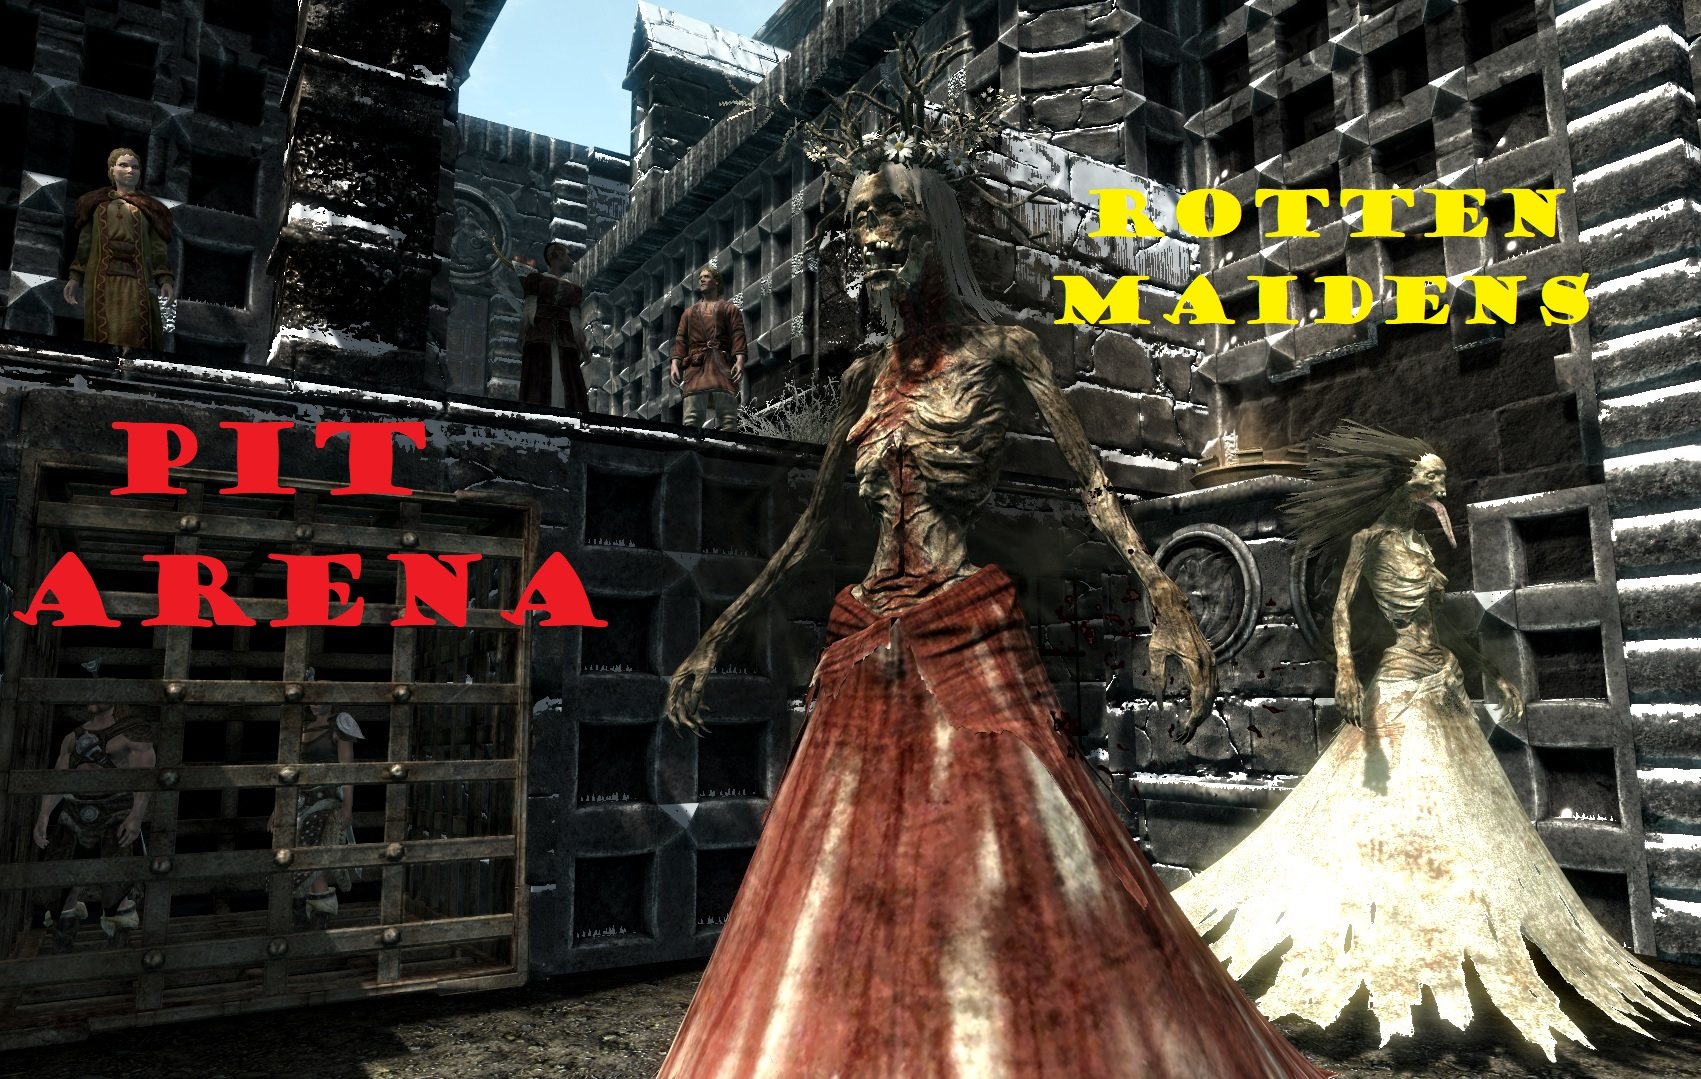 Pit arena Rotten Maidens